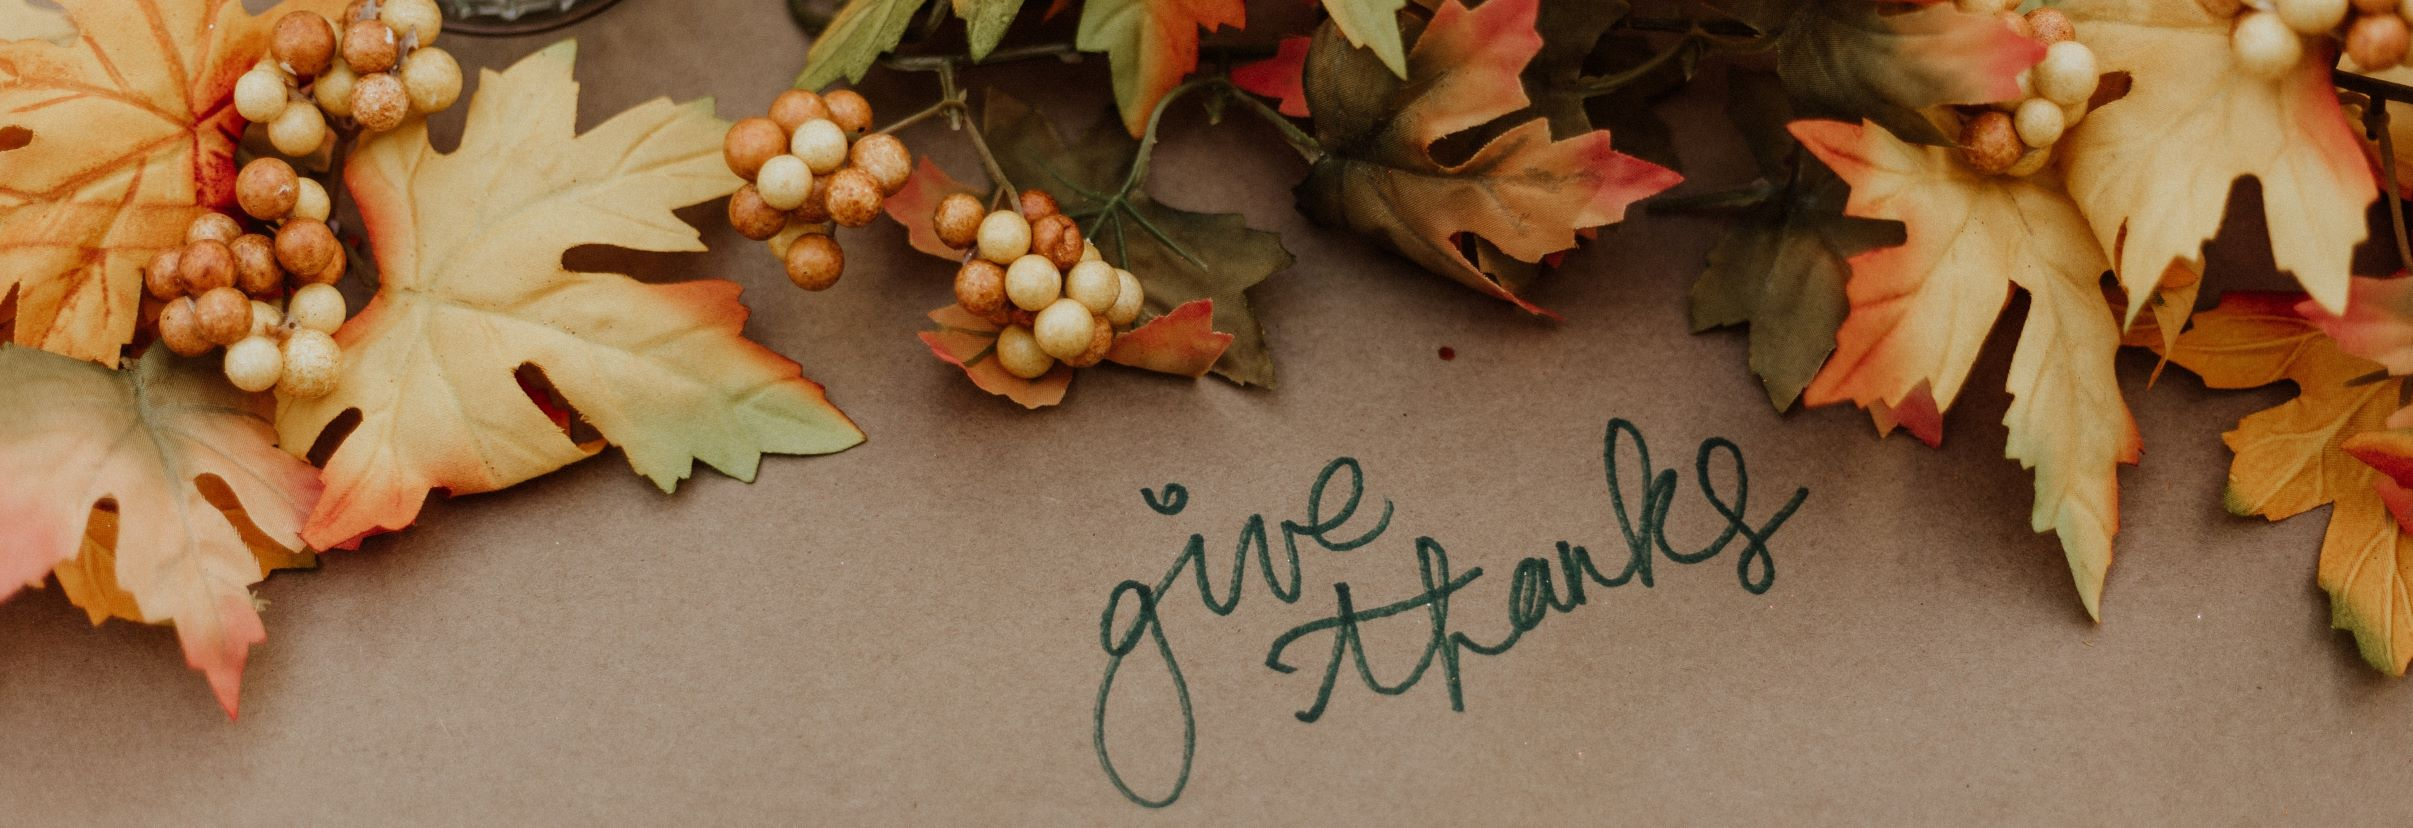 How to Have a Grateful Thanksgiving